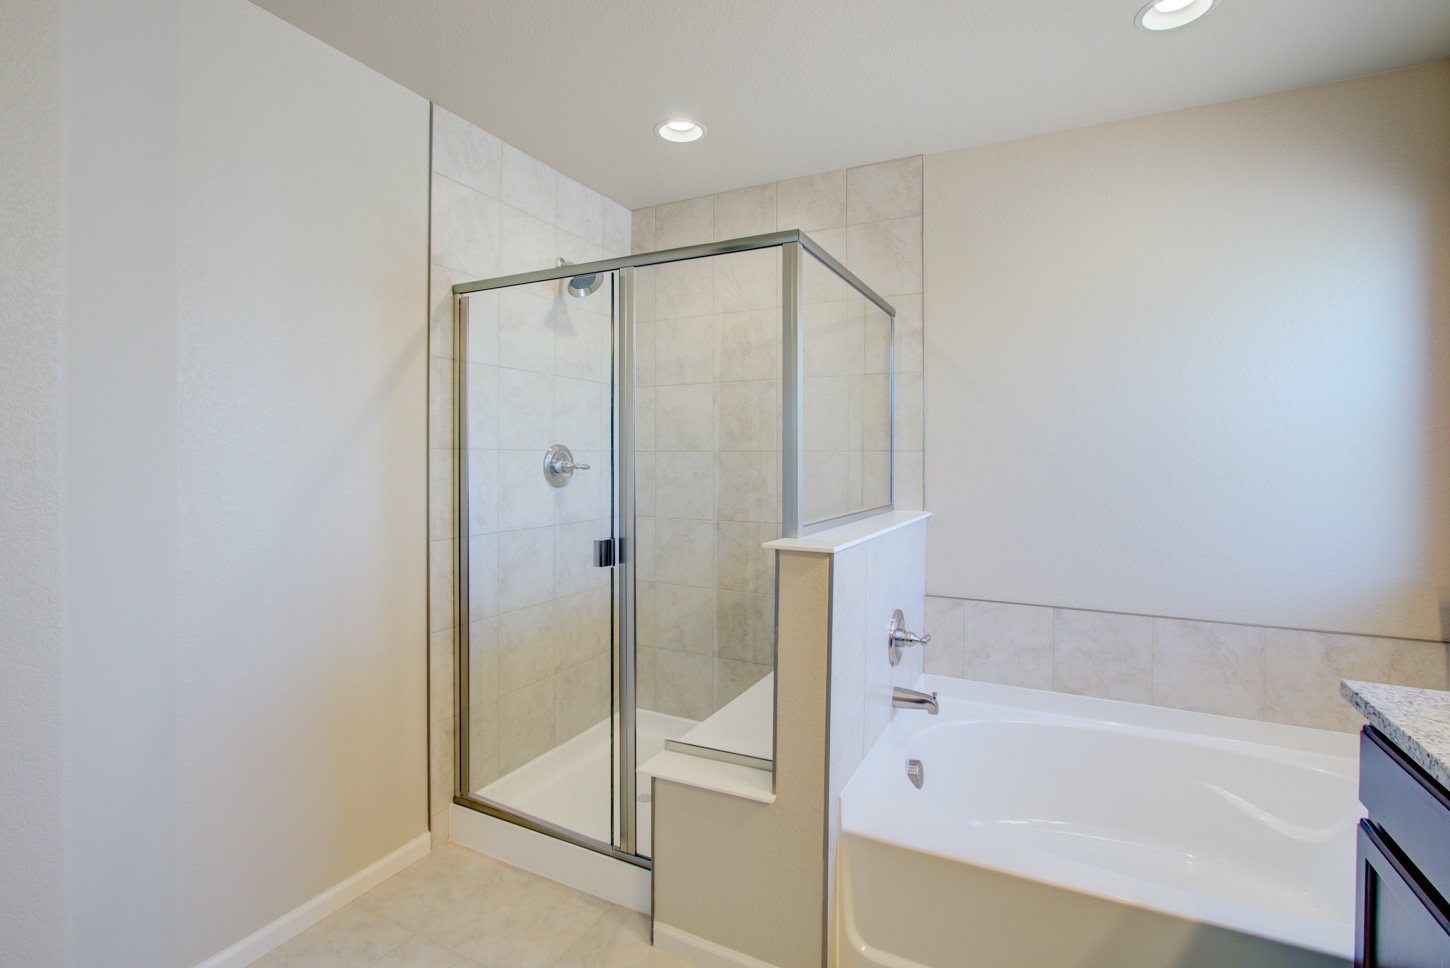 19_4426_20fox_20grove_20dr_ft_20collins_master_20bathroom_new_20homes